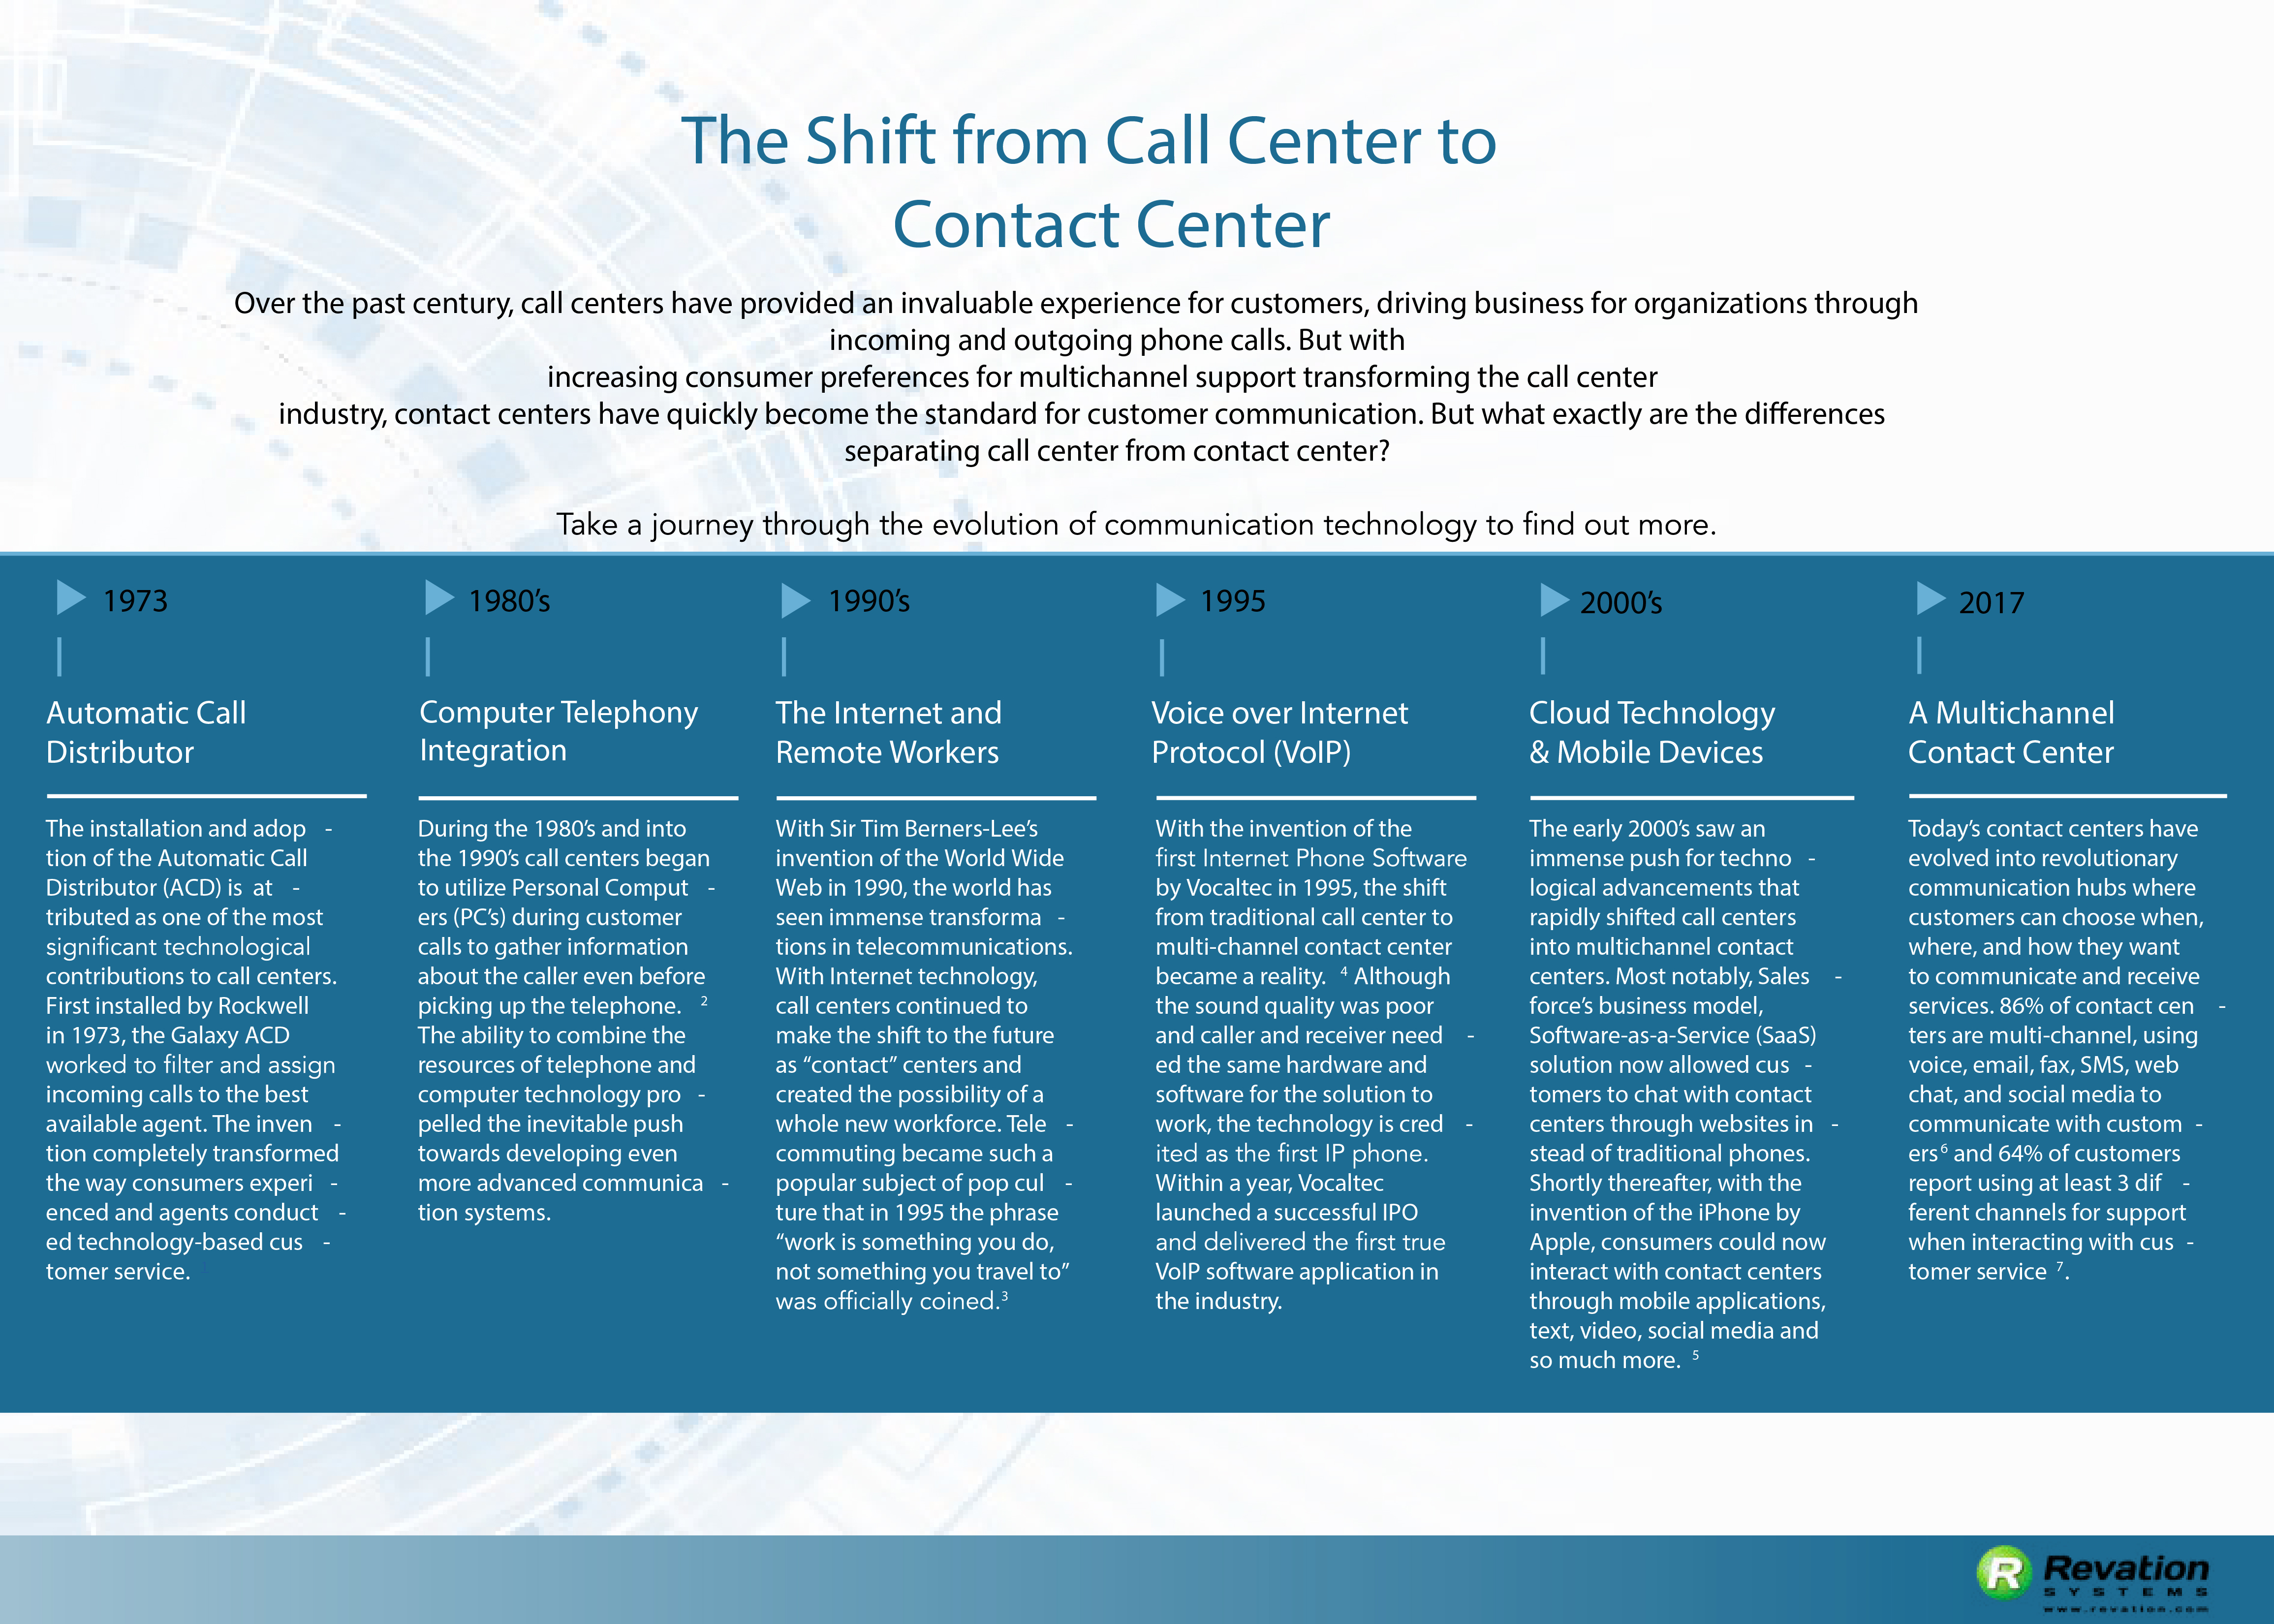 The Shift from Call Center to Contact Center